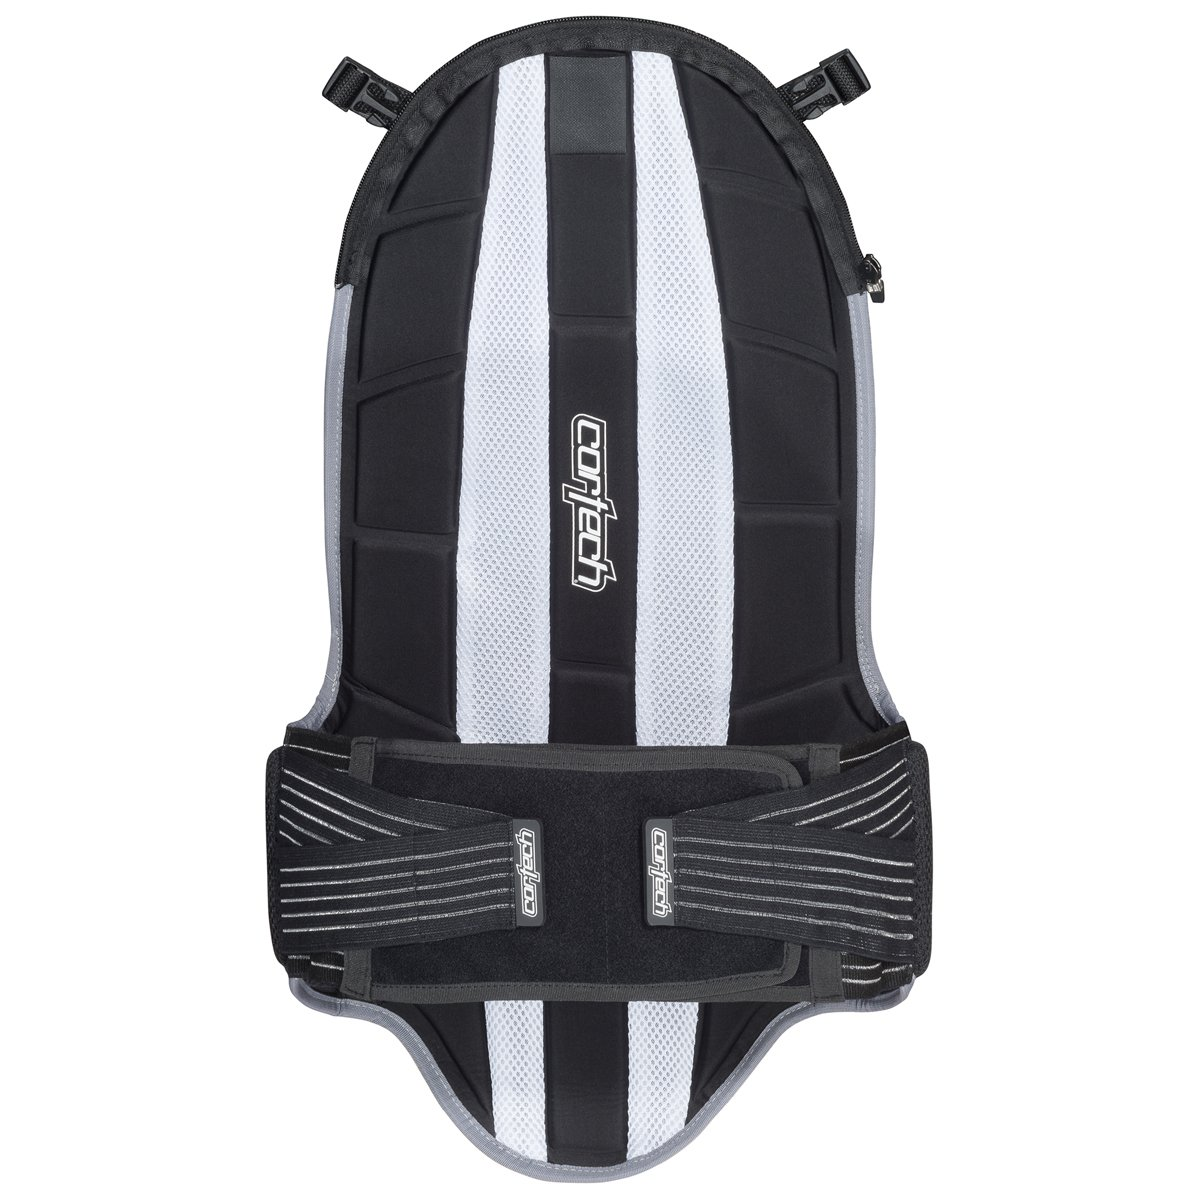 Cortech Accelerator Removable 5-Plate Back Protector, Black